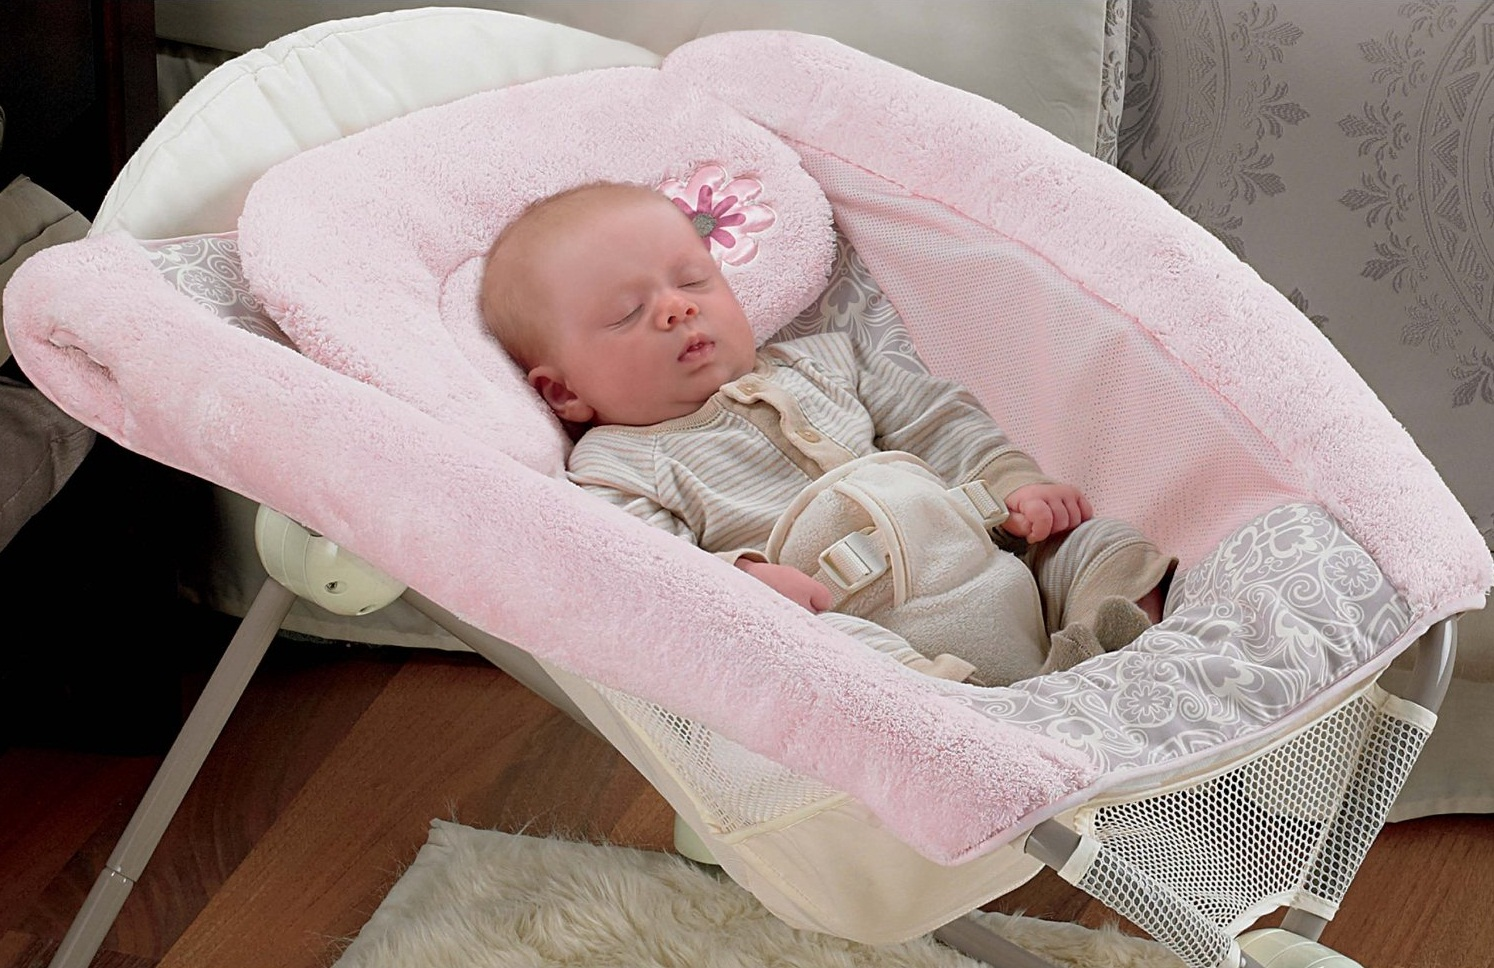 who images photos sleeper babycenter rock safety post and play n moms photobucket pictures have